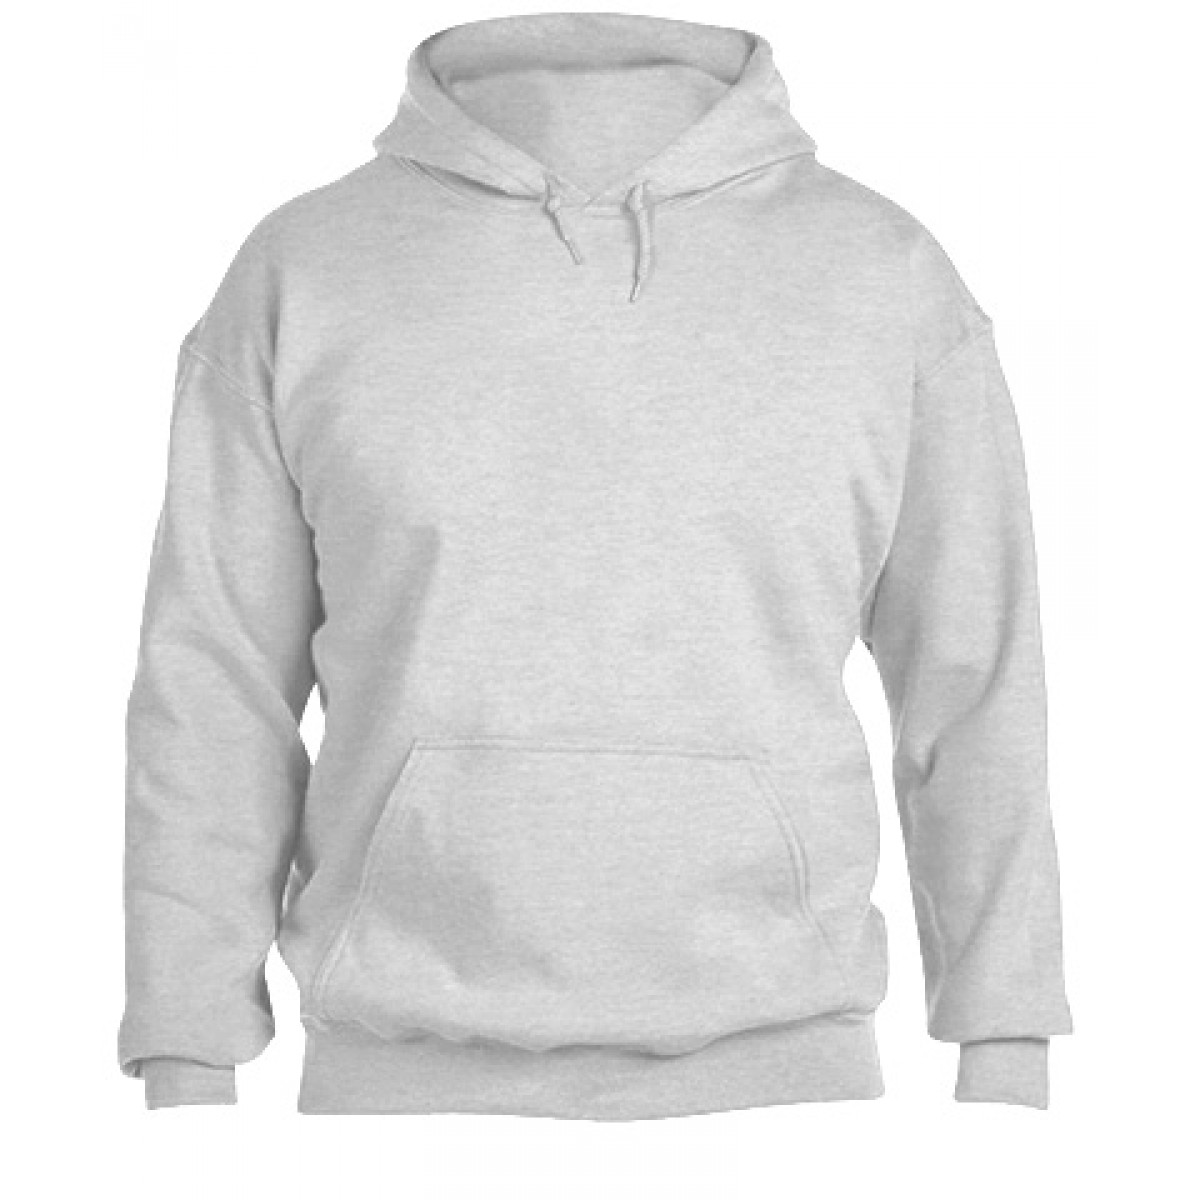 Solid Hooded Sweatshirt  50/50 Heavy Blend-Ash Gray-S